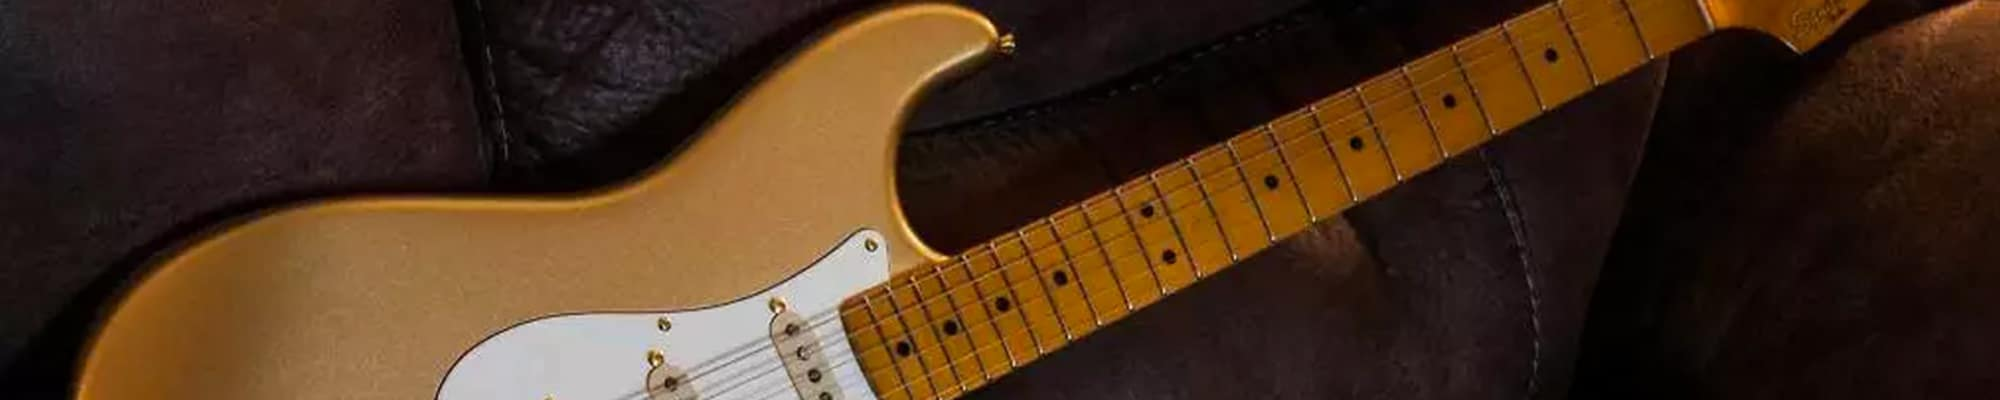 6 Great Electric Blues Guitars For Players On A Budget Reverb News Gibson 335 Wiring Harness